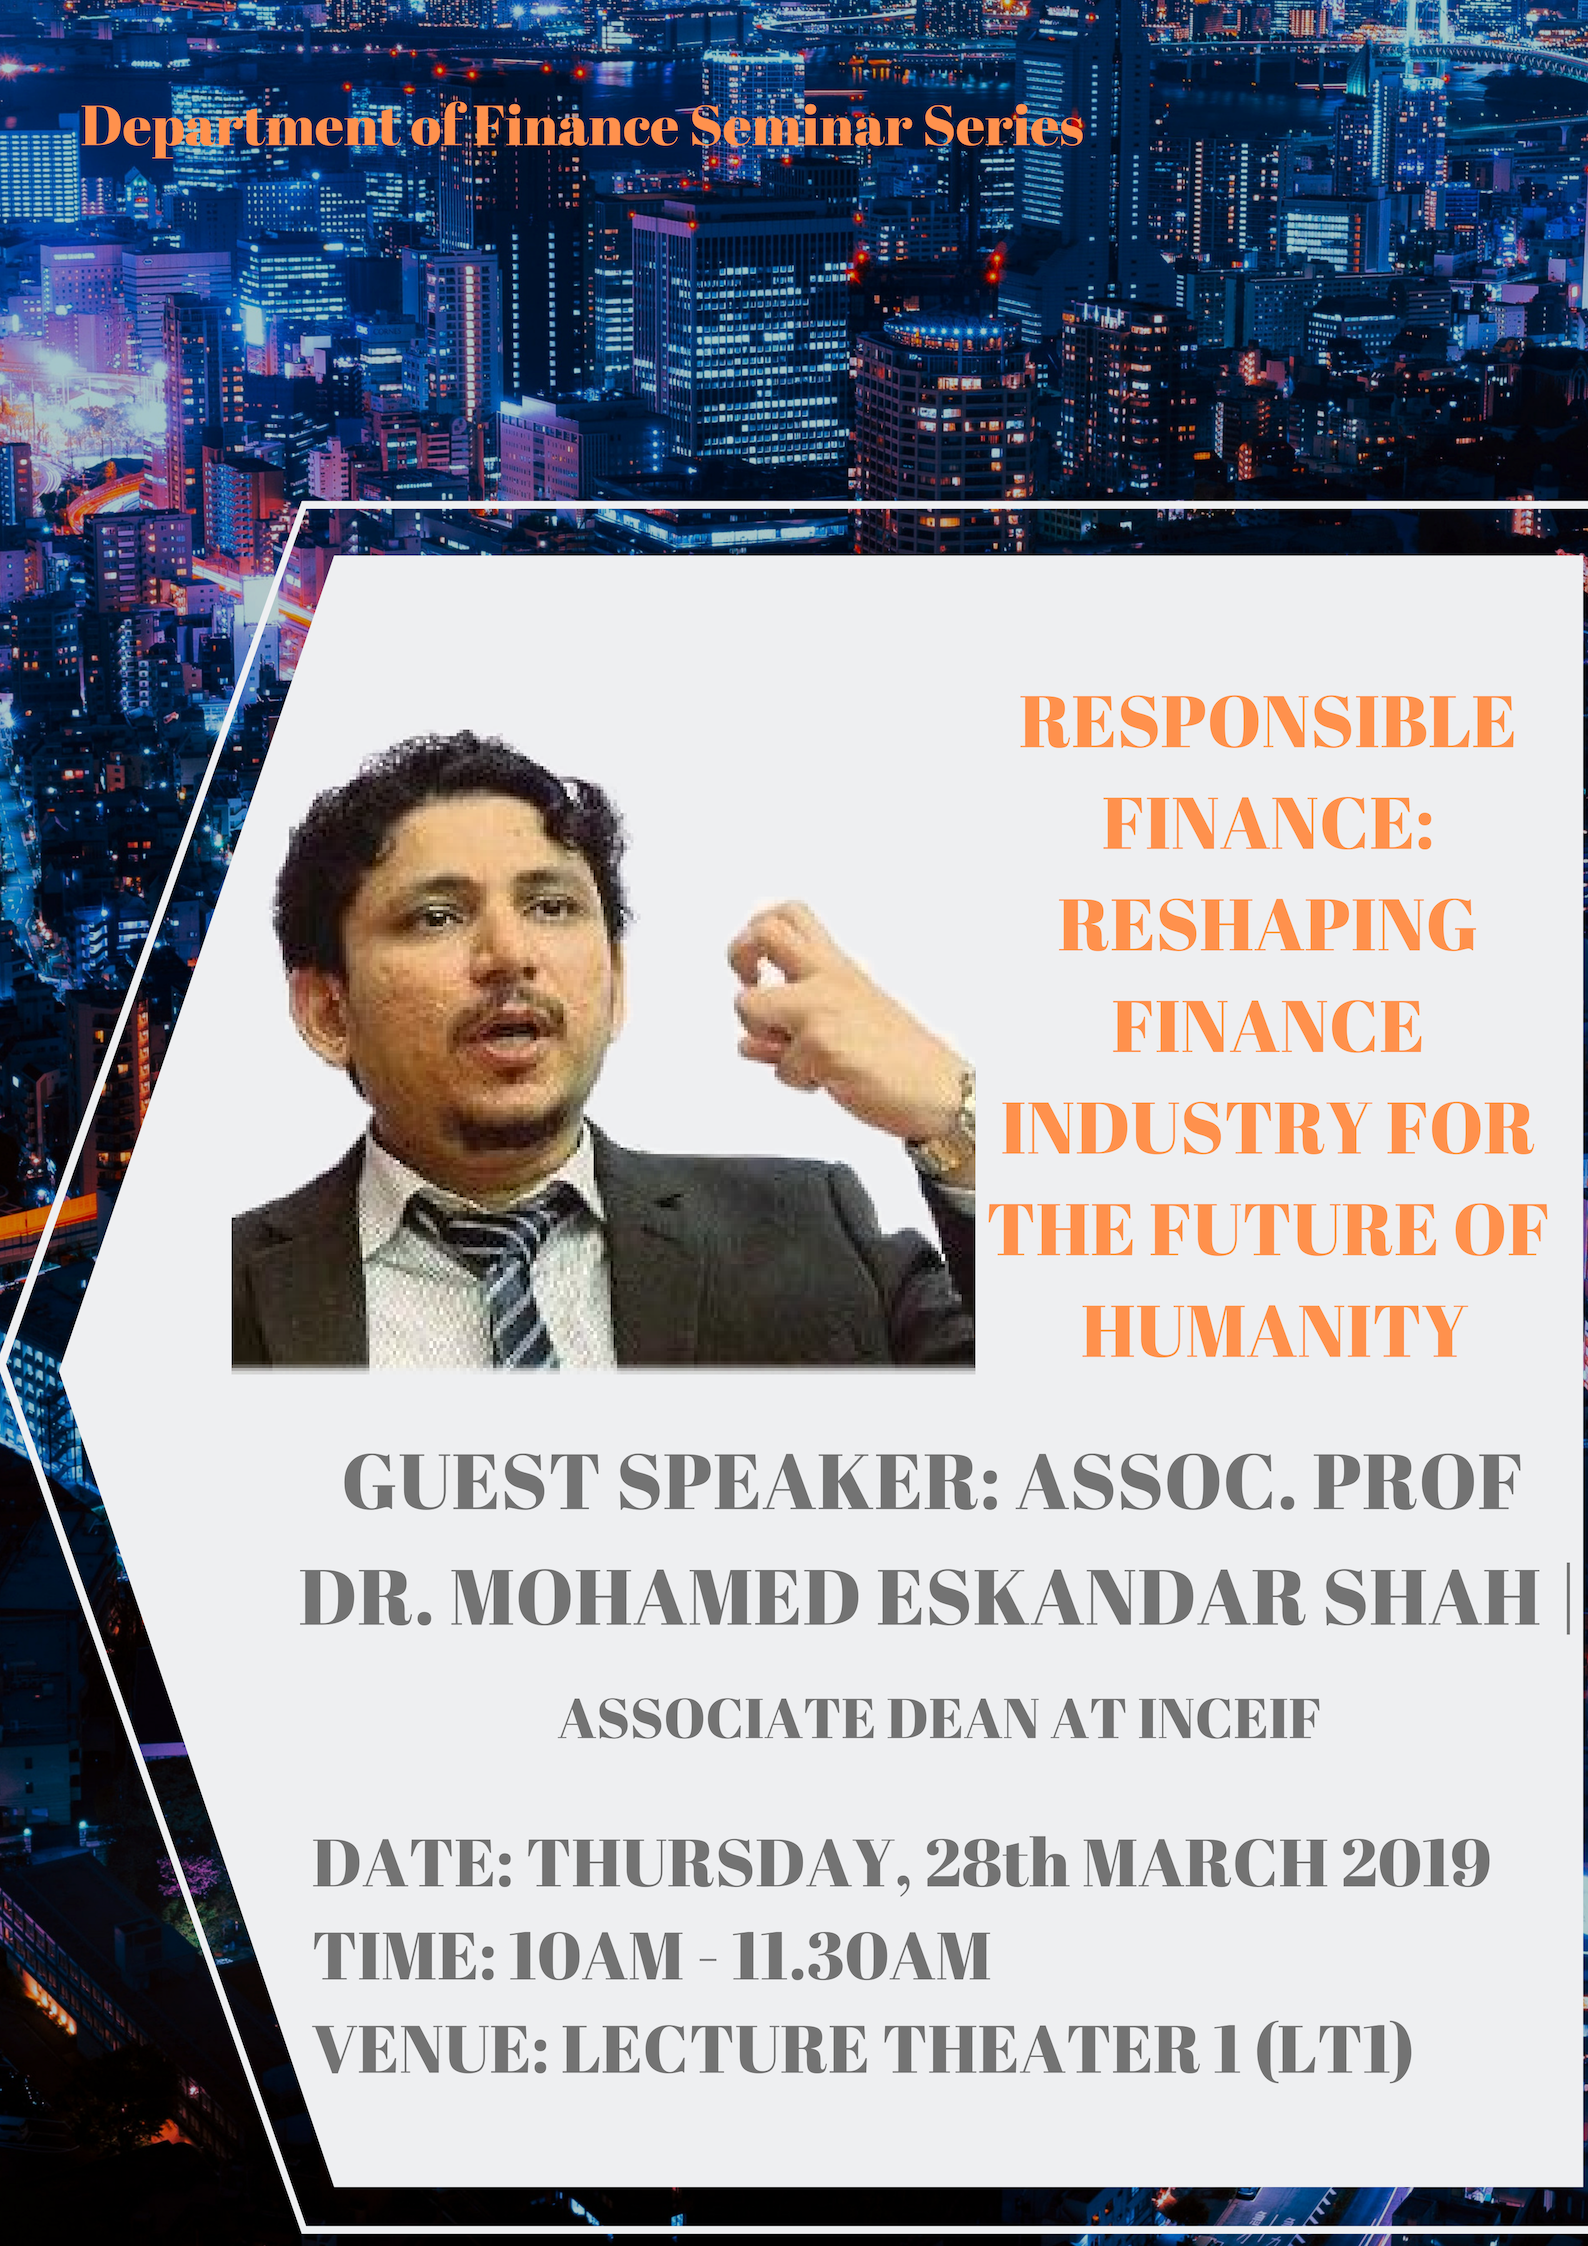 Responsible Finance:Reshaping Finance Industry For The Future Of Humanity By Assoc. Prof. Dr.Mohamed Eskandar Shah Mohd. Rasid (Associate Dean At INCEIF)